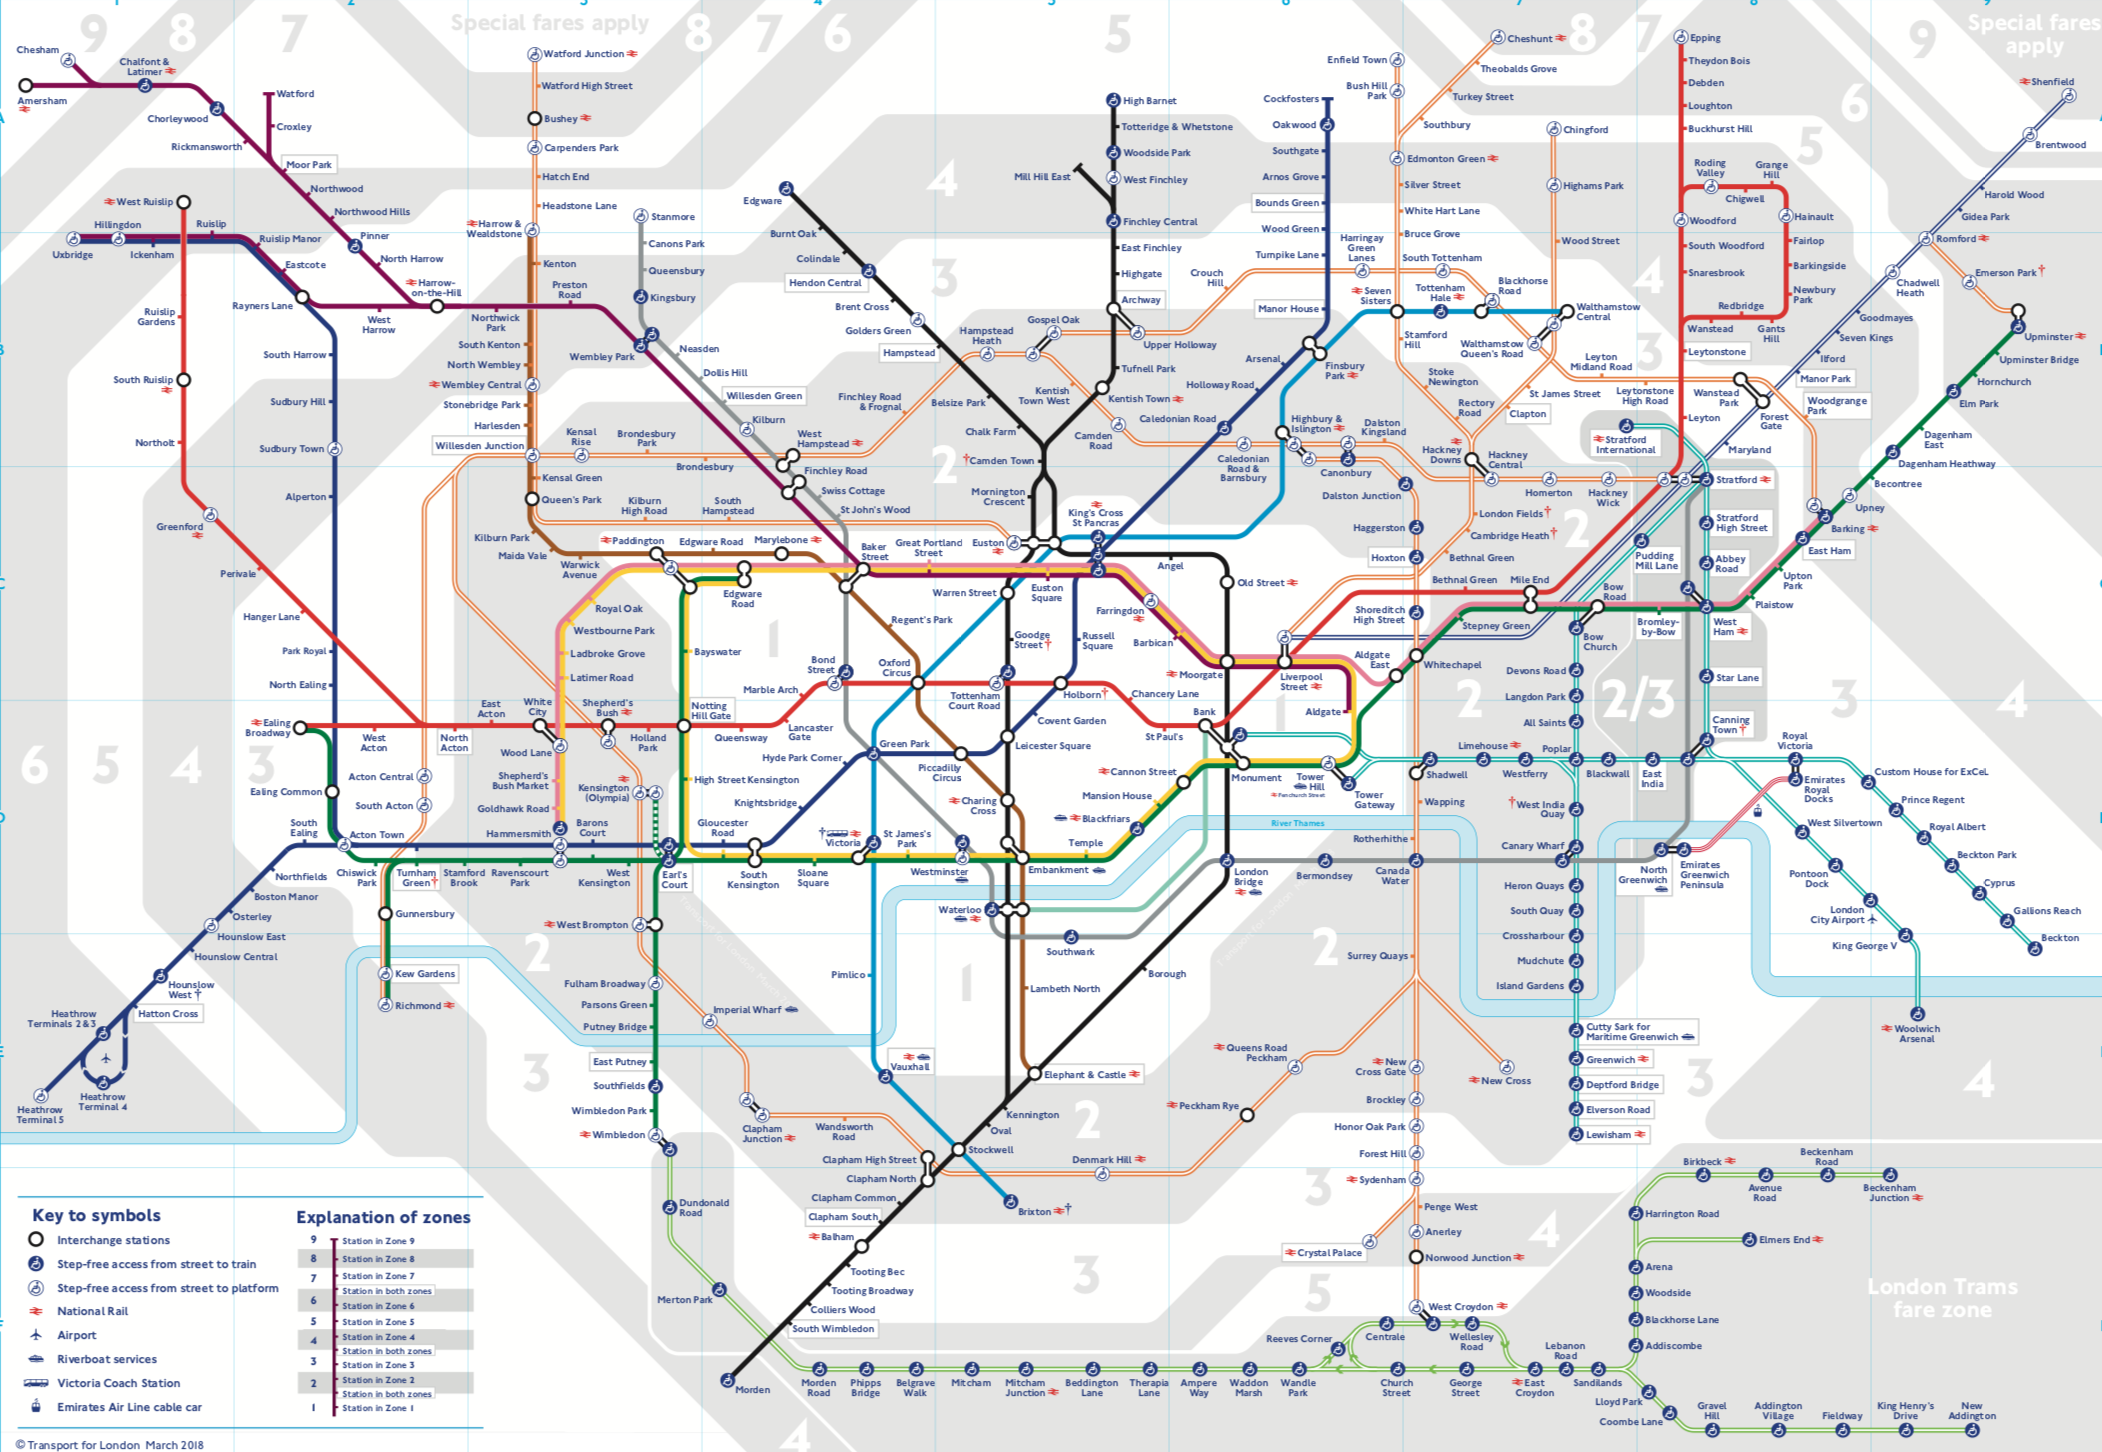 london underground map 2018 govuk available at http